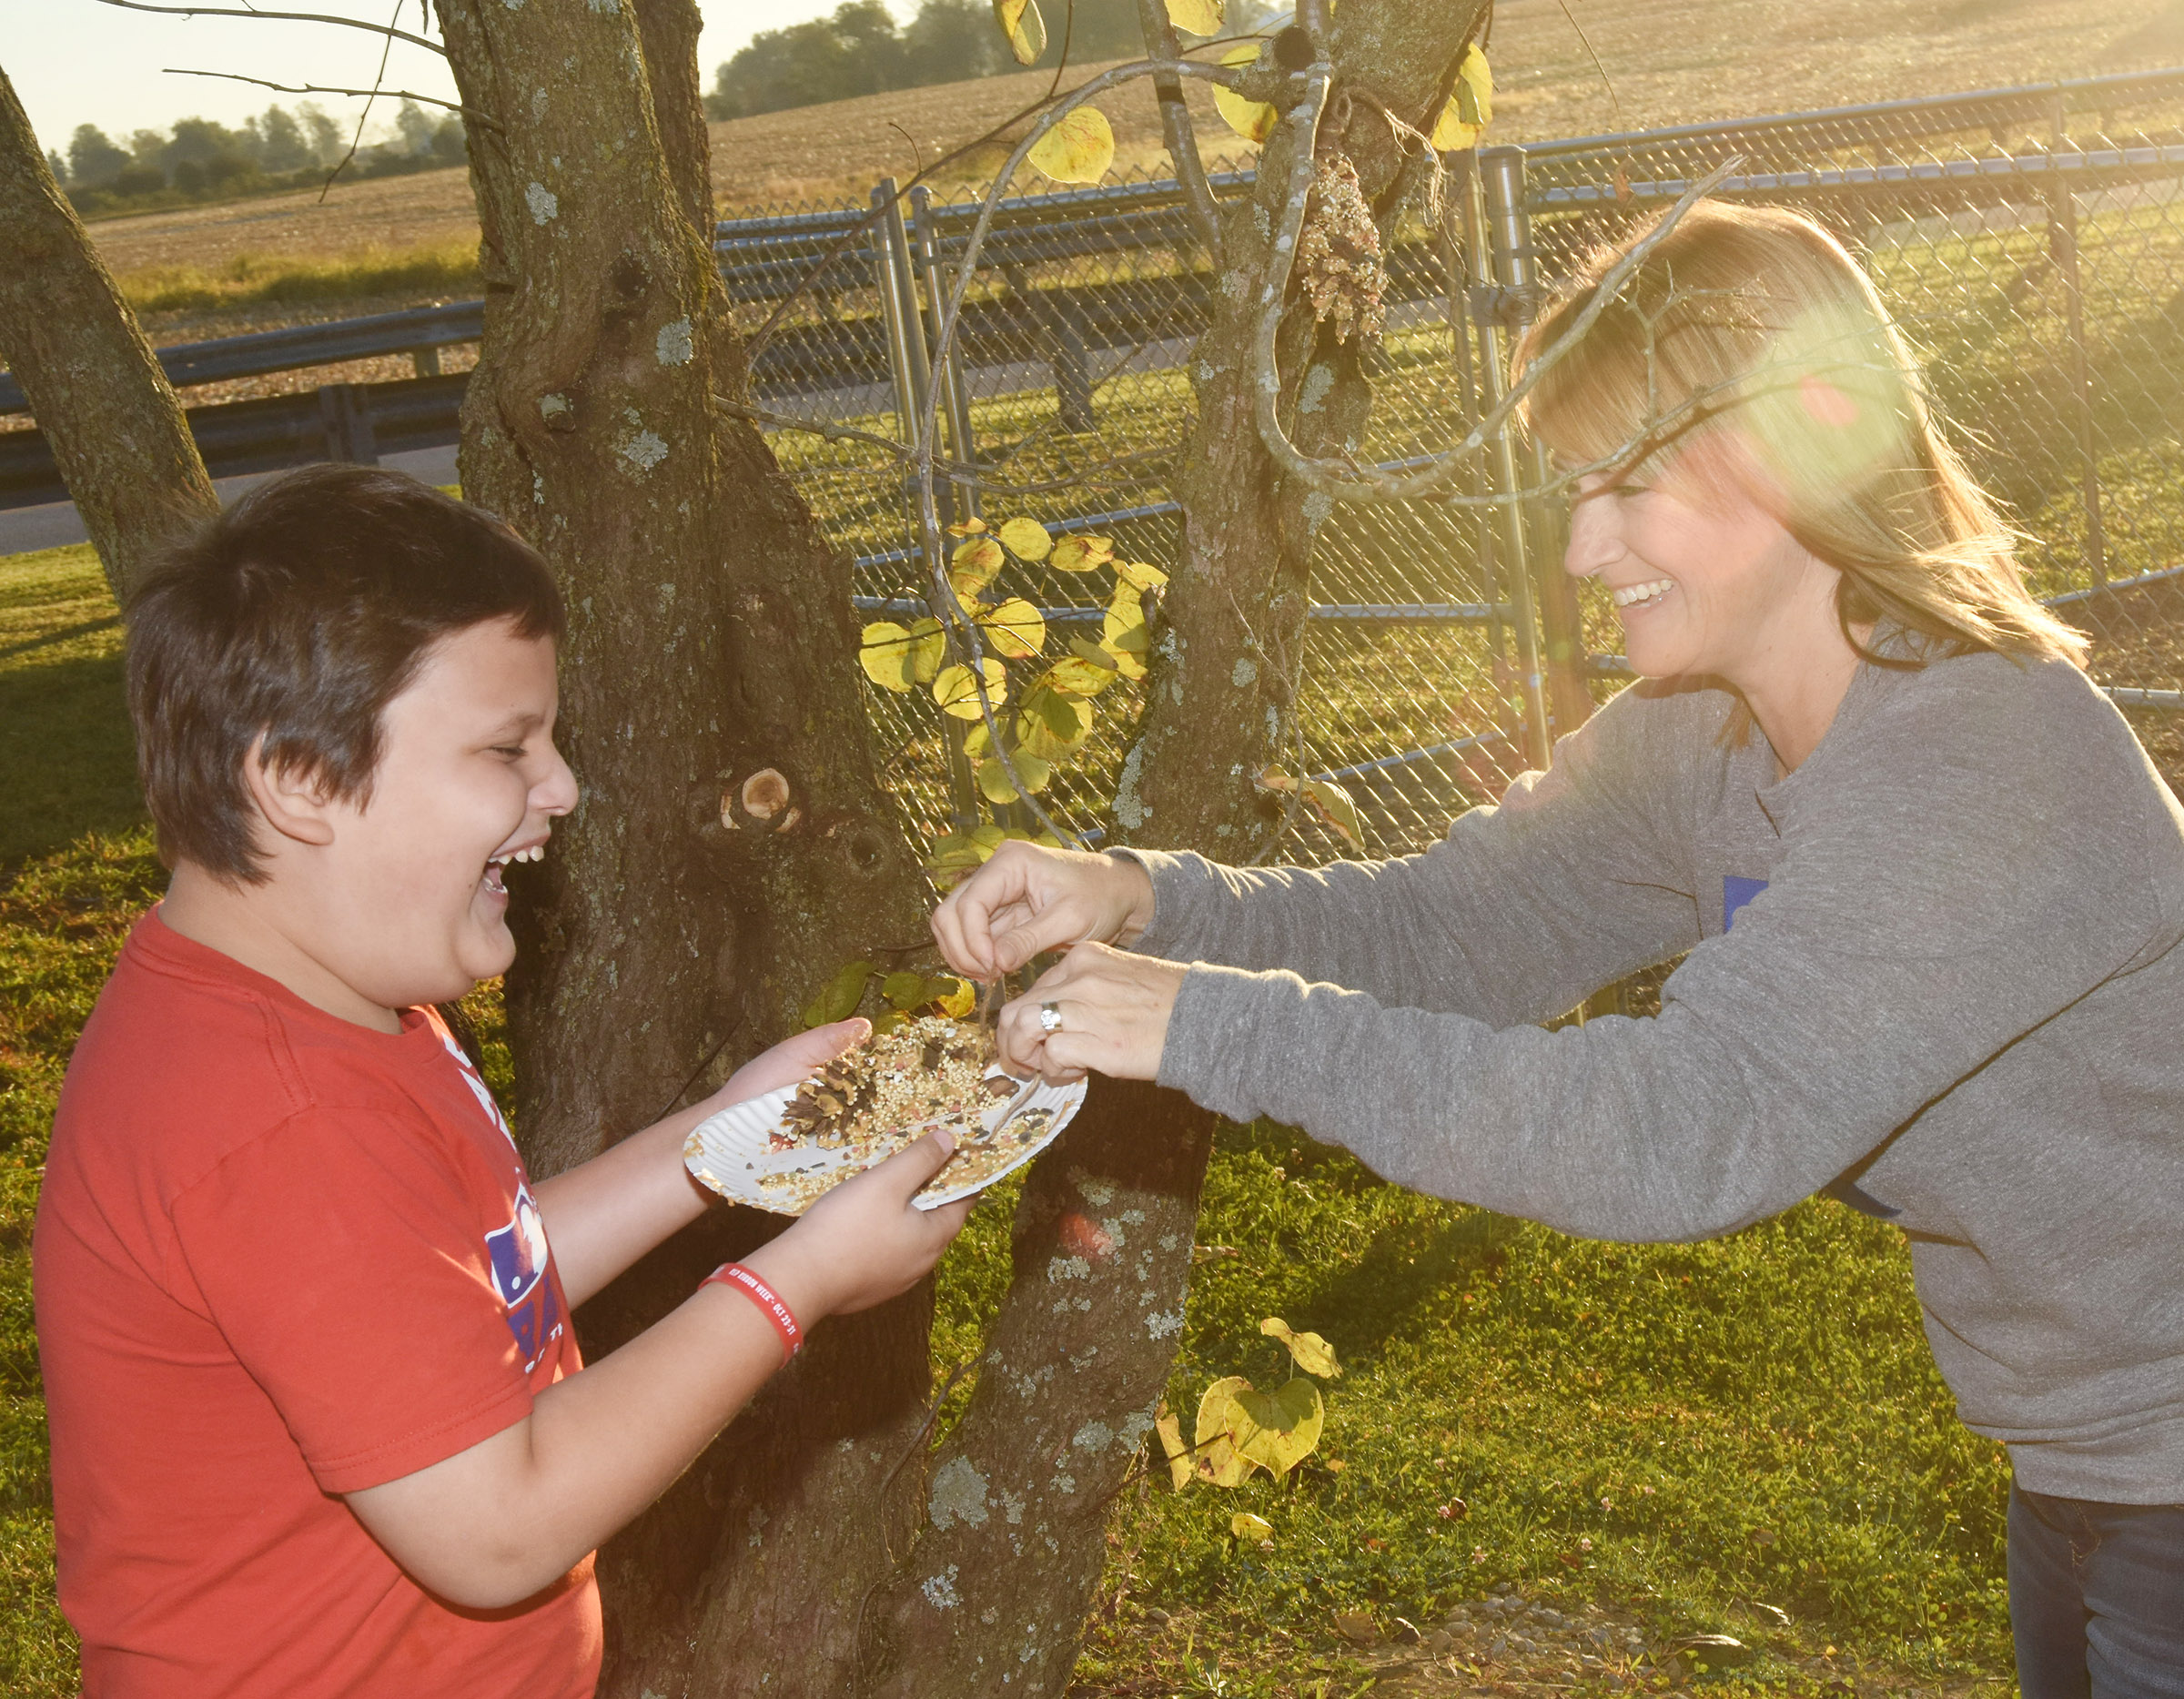 CES second-grader Cloud Malone hangs his bird feeder, with help from teacher Vanessa Adkins.